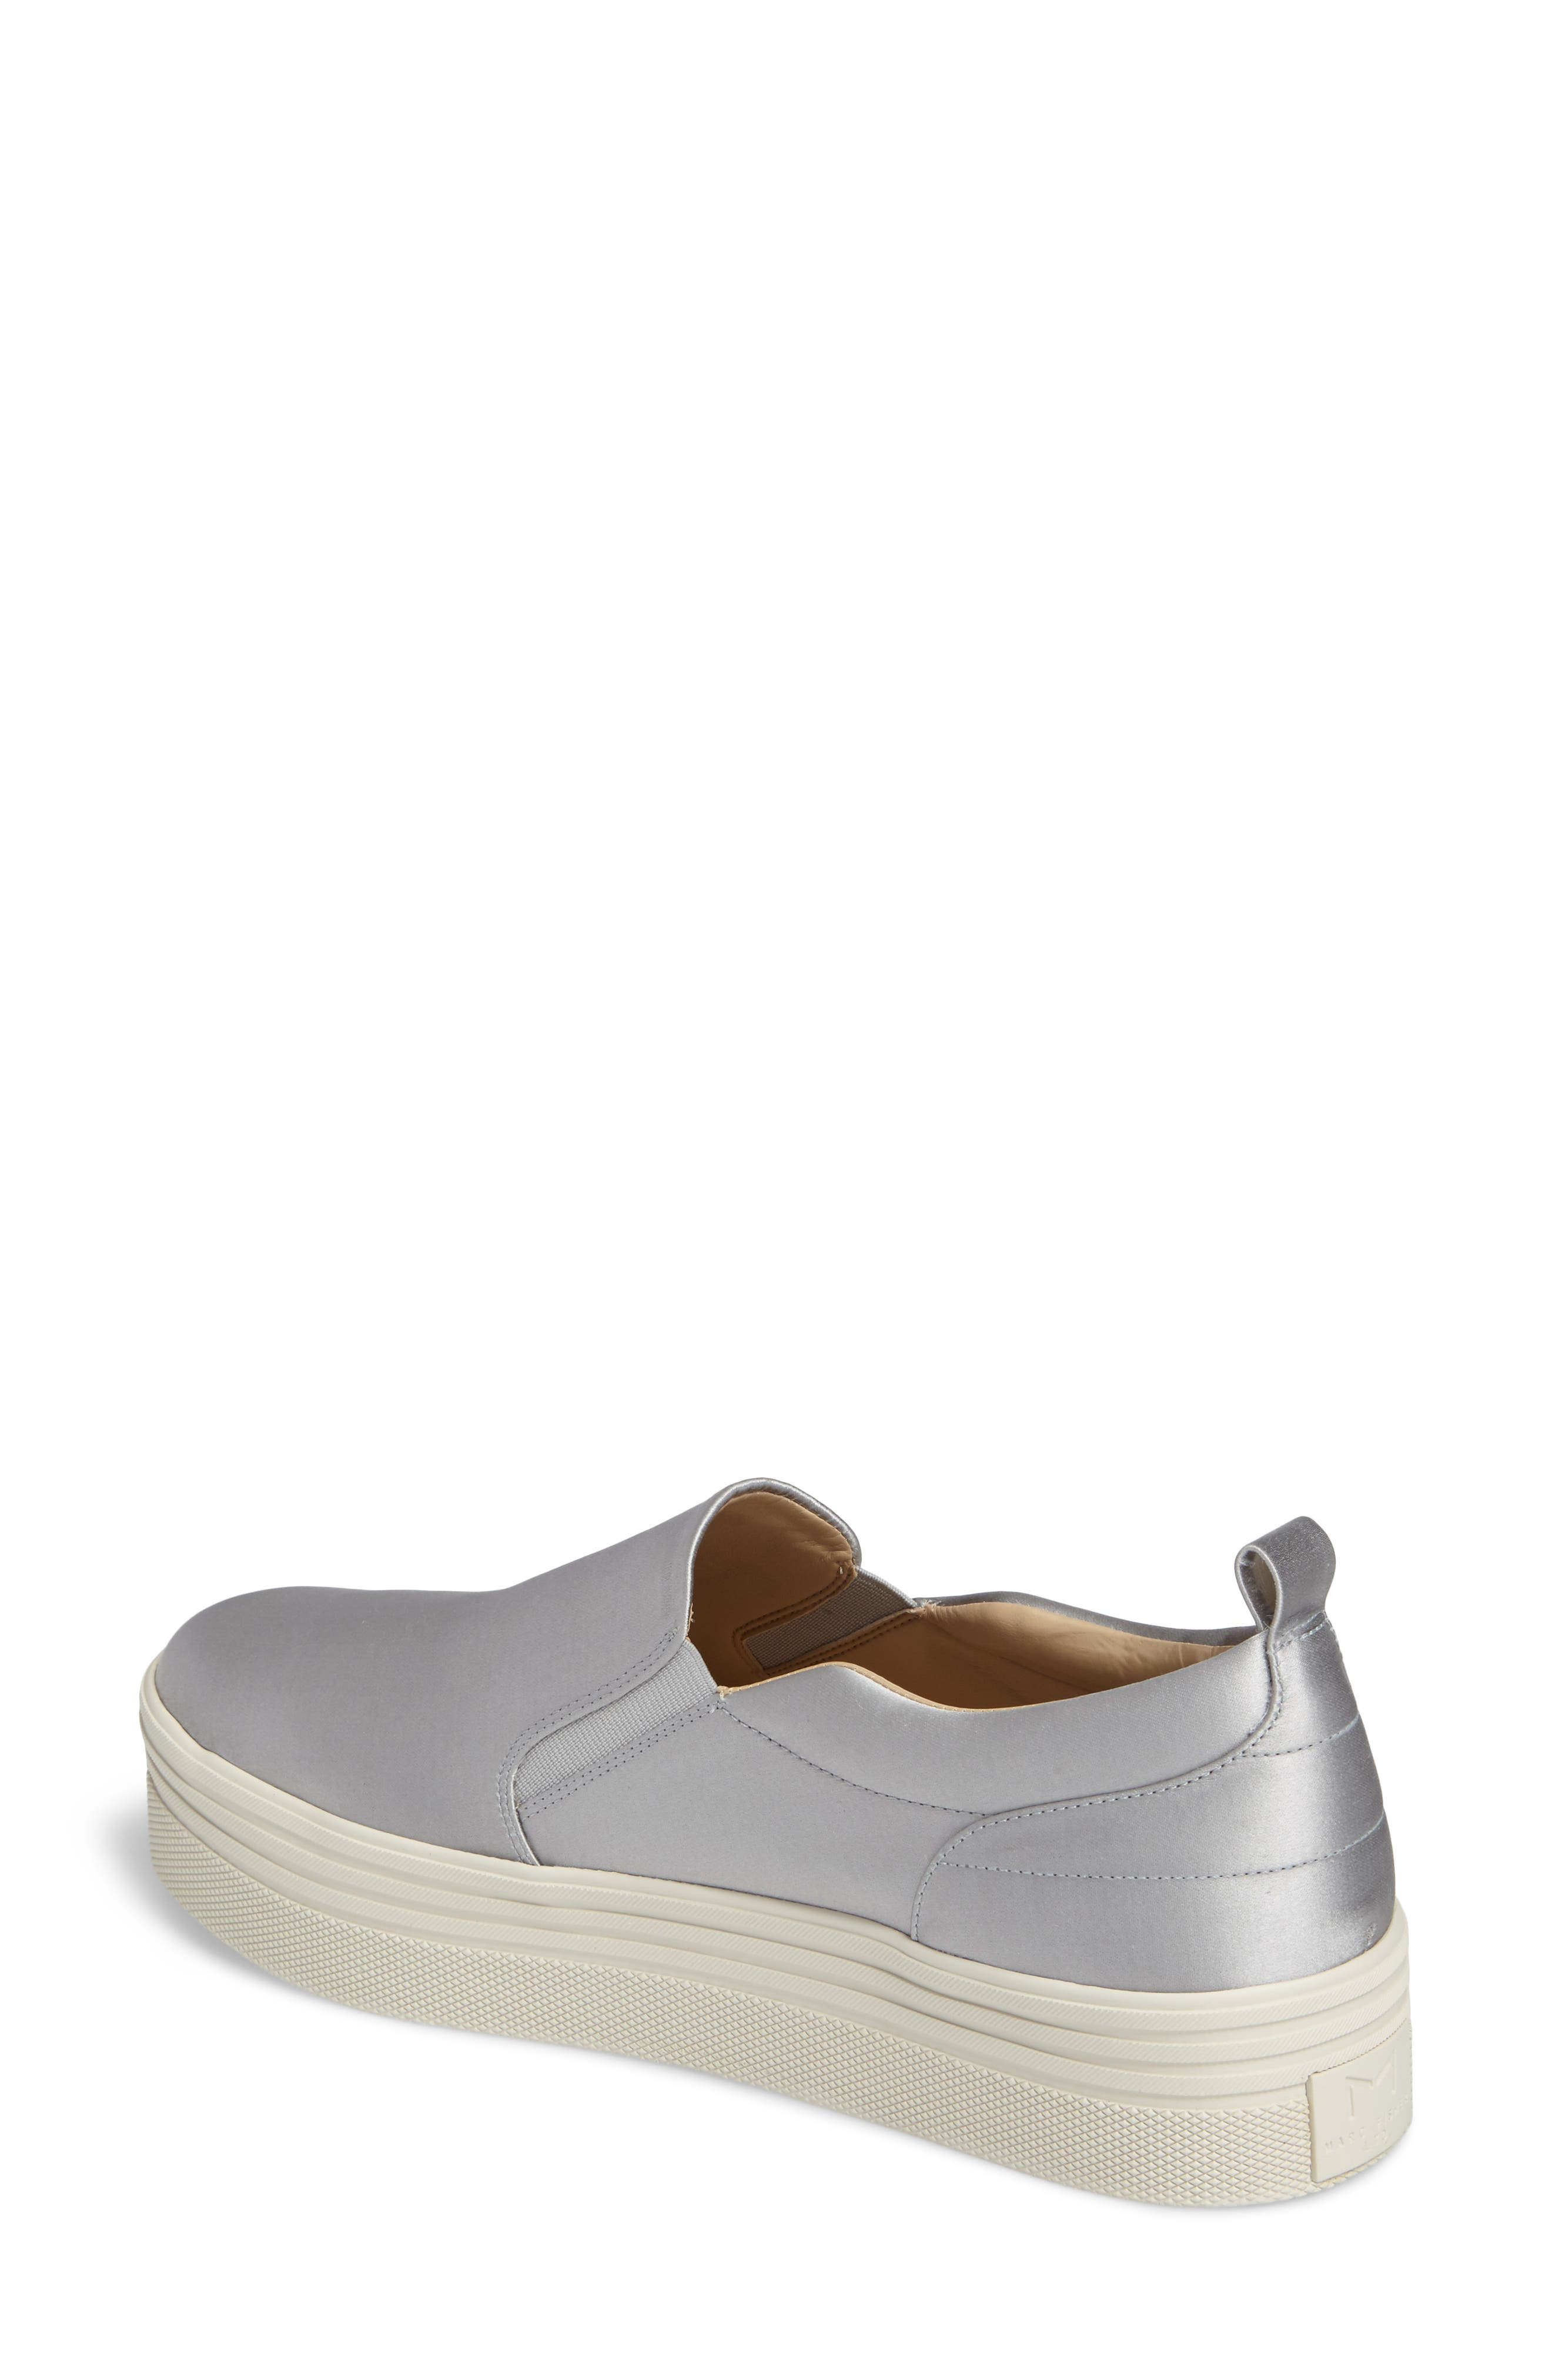 Alternate Image 2  - Marc Fisher LTD Elise Platform Sneaker (Women)